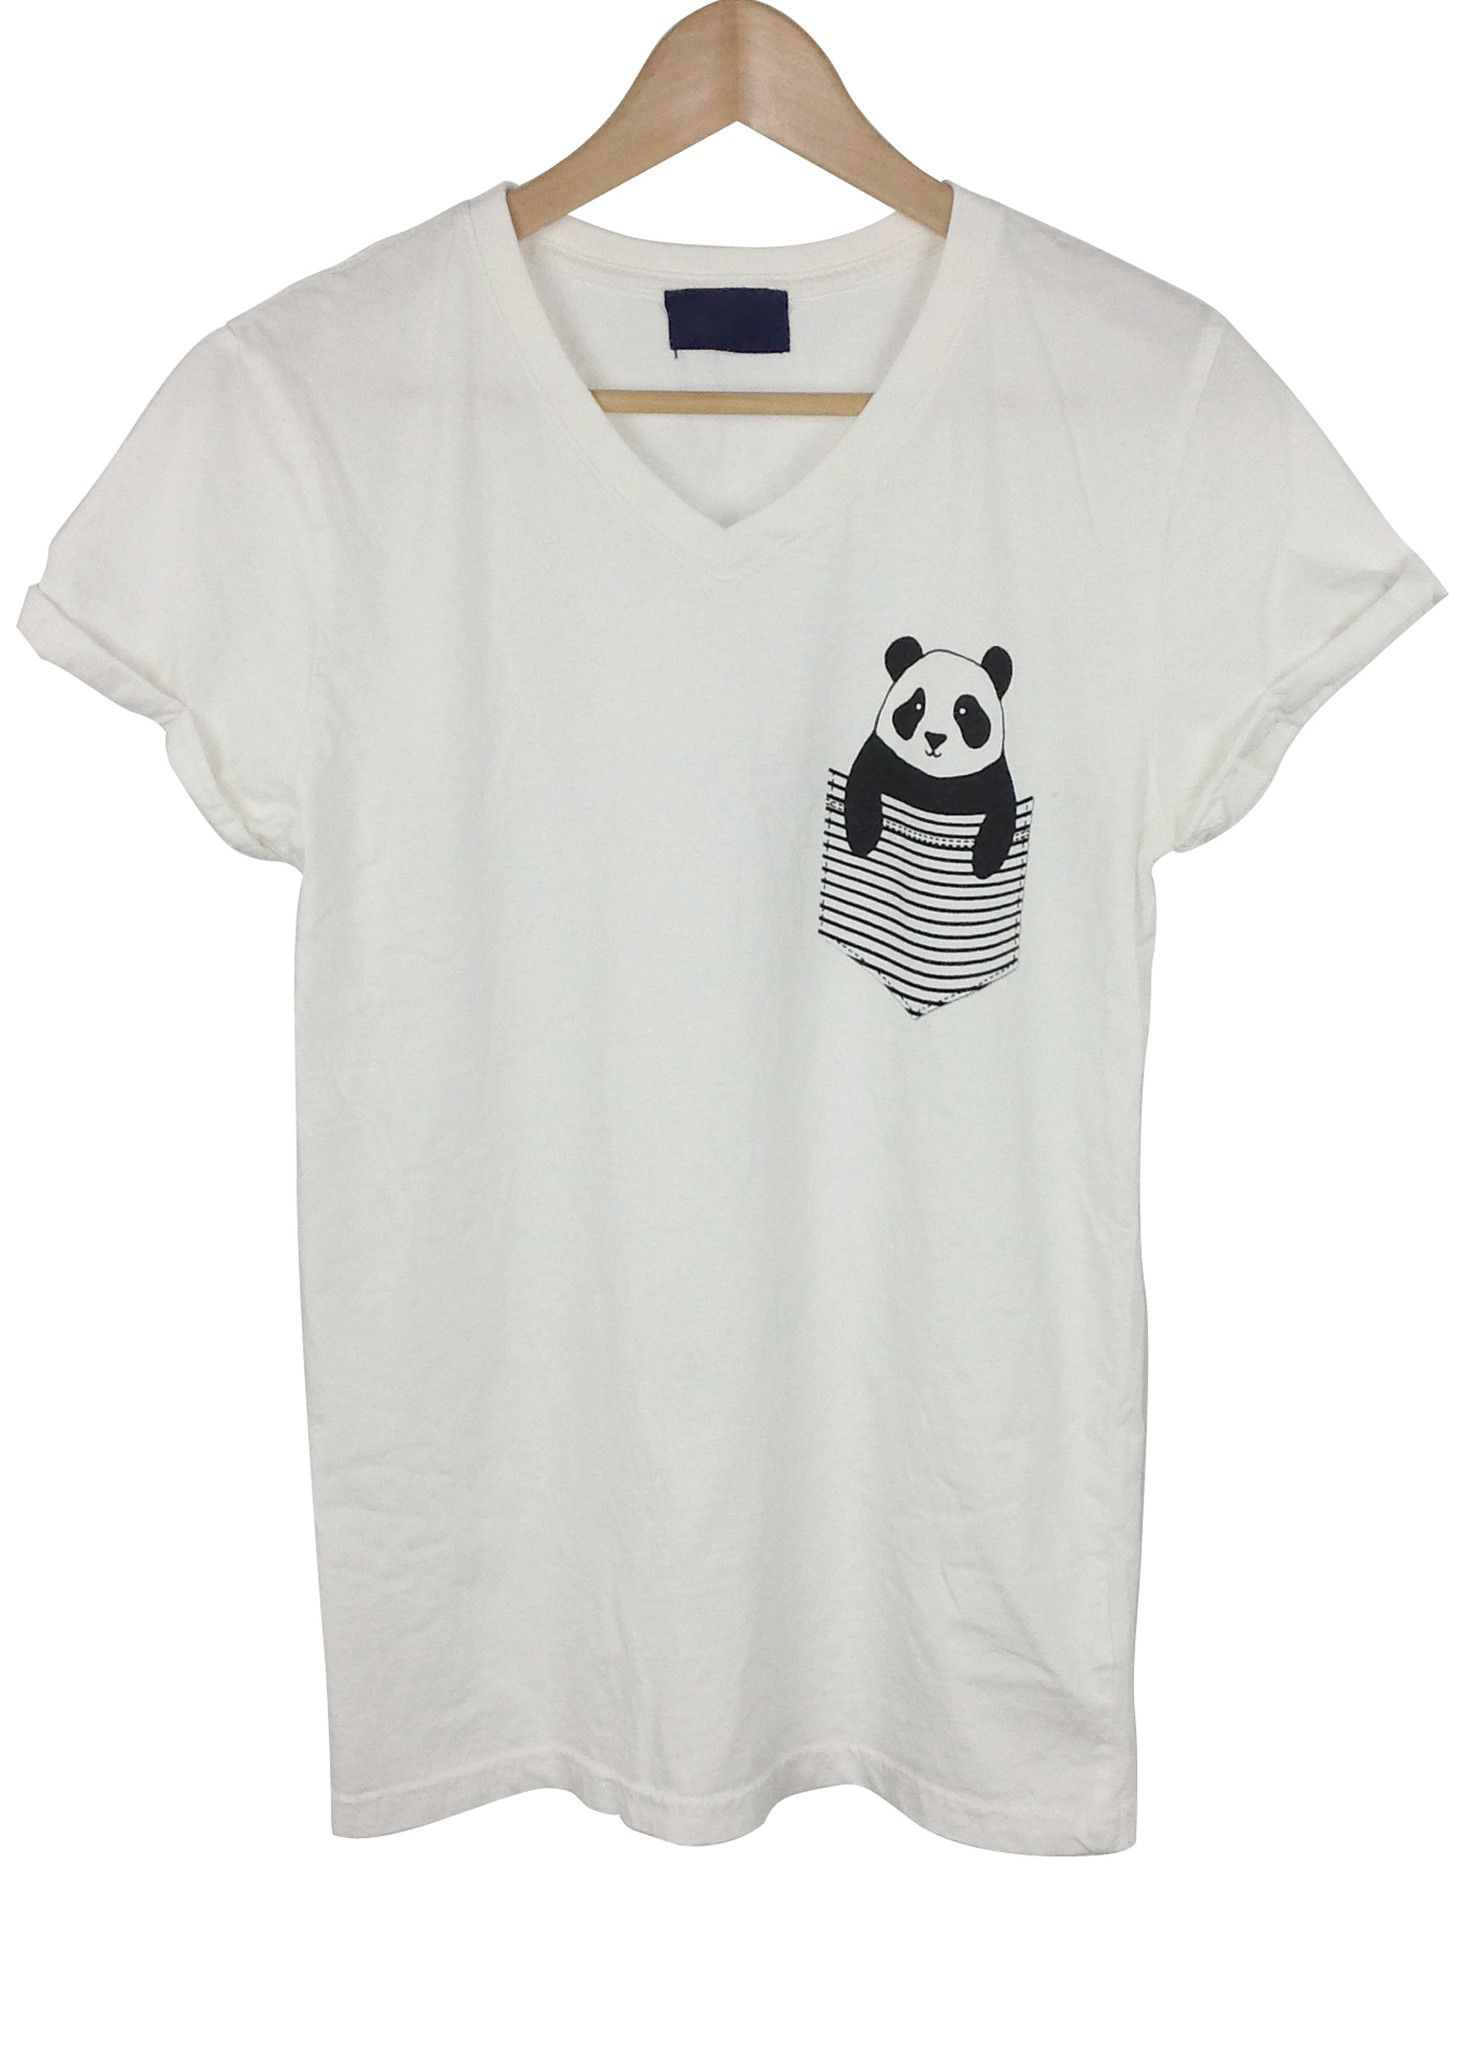 4288a8c4251 panda in the pocket graphic - v-neck short sleeves t-shirt - 50%cotton and  50% poly - made in USA